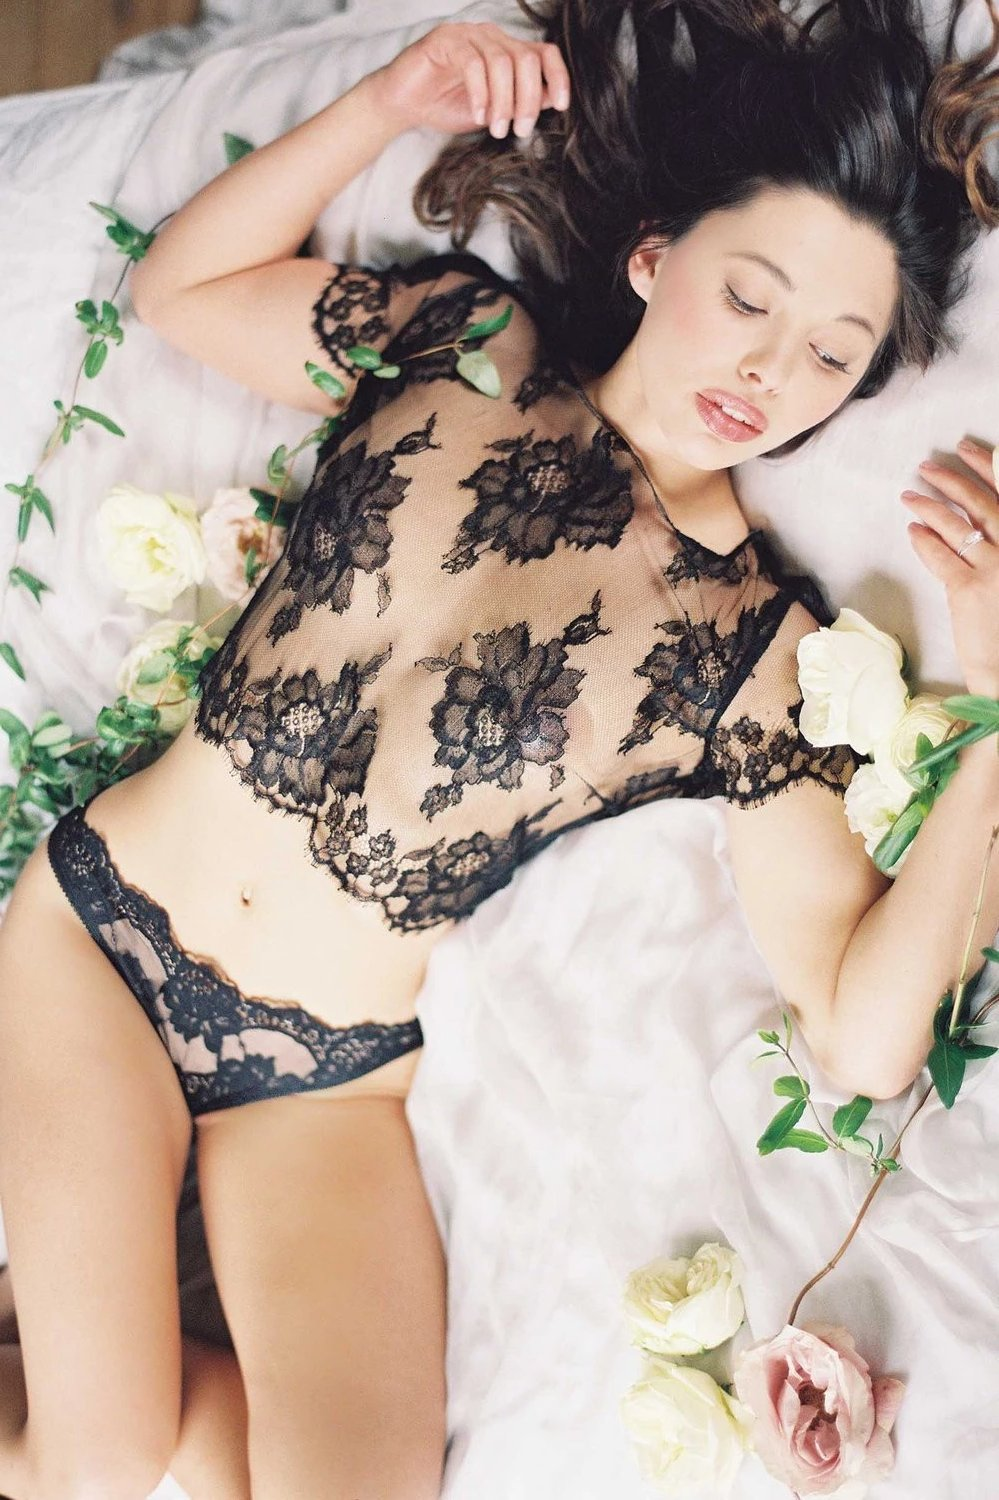 Rosa Scalloped French lace Panties briefs in black